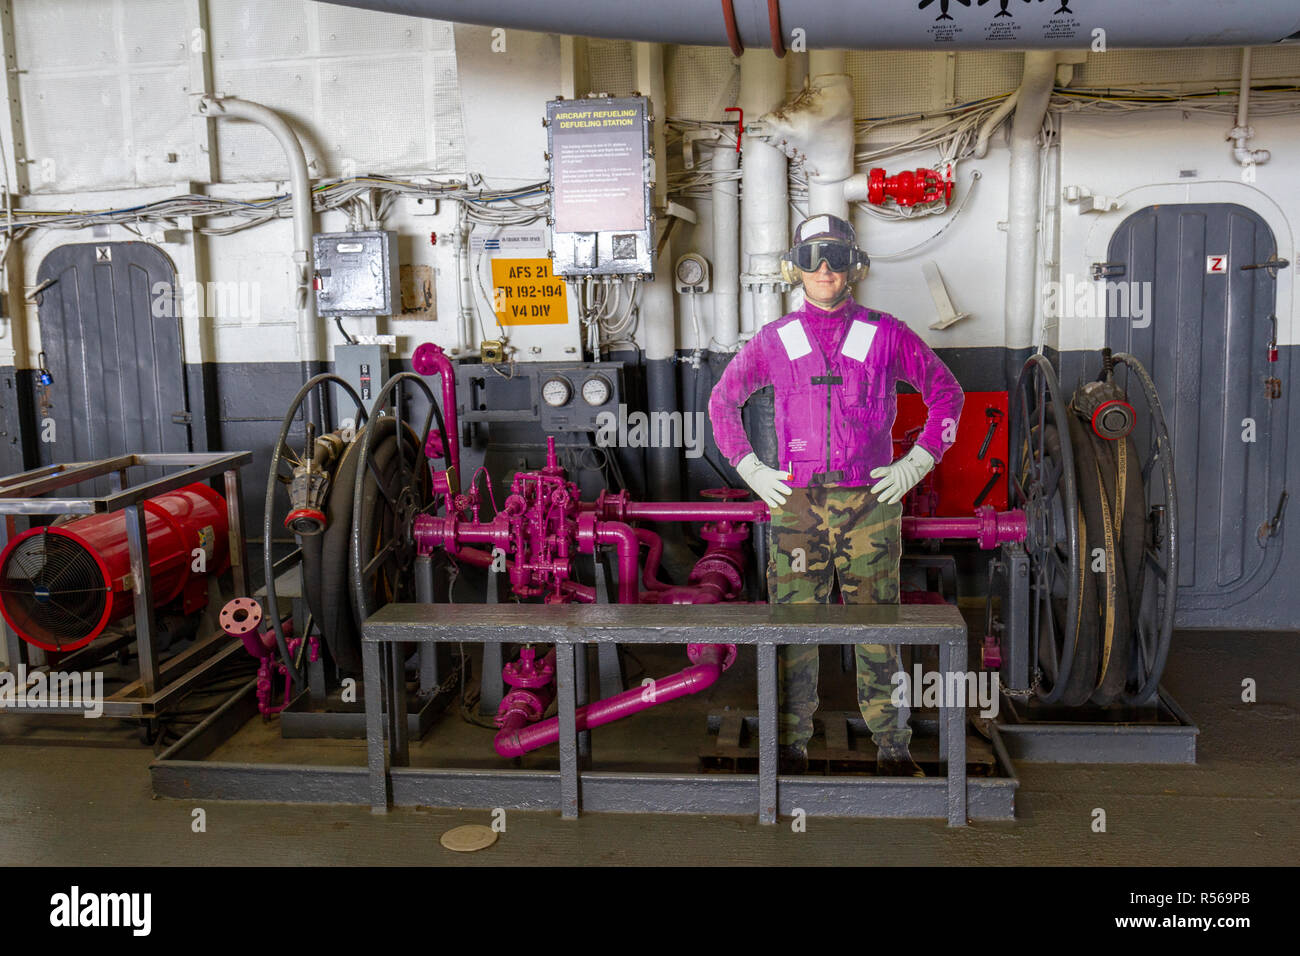 An aircraft refueling/defueling station below decks on the USS Midway, San Diego, California, United States. - Stock Image